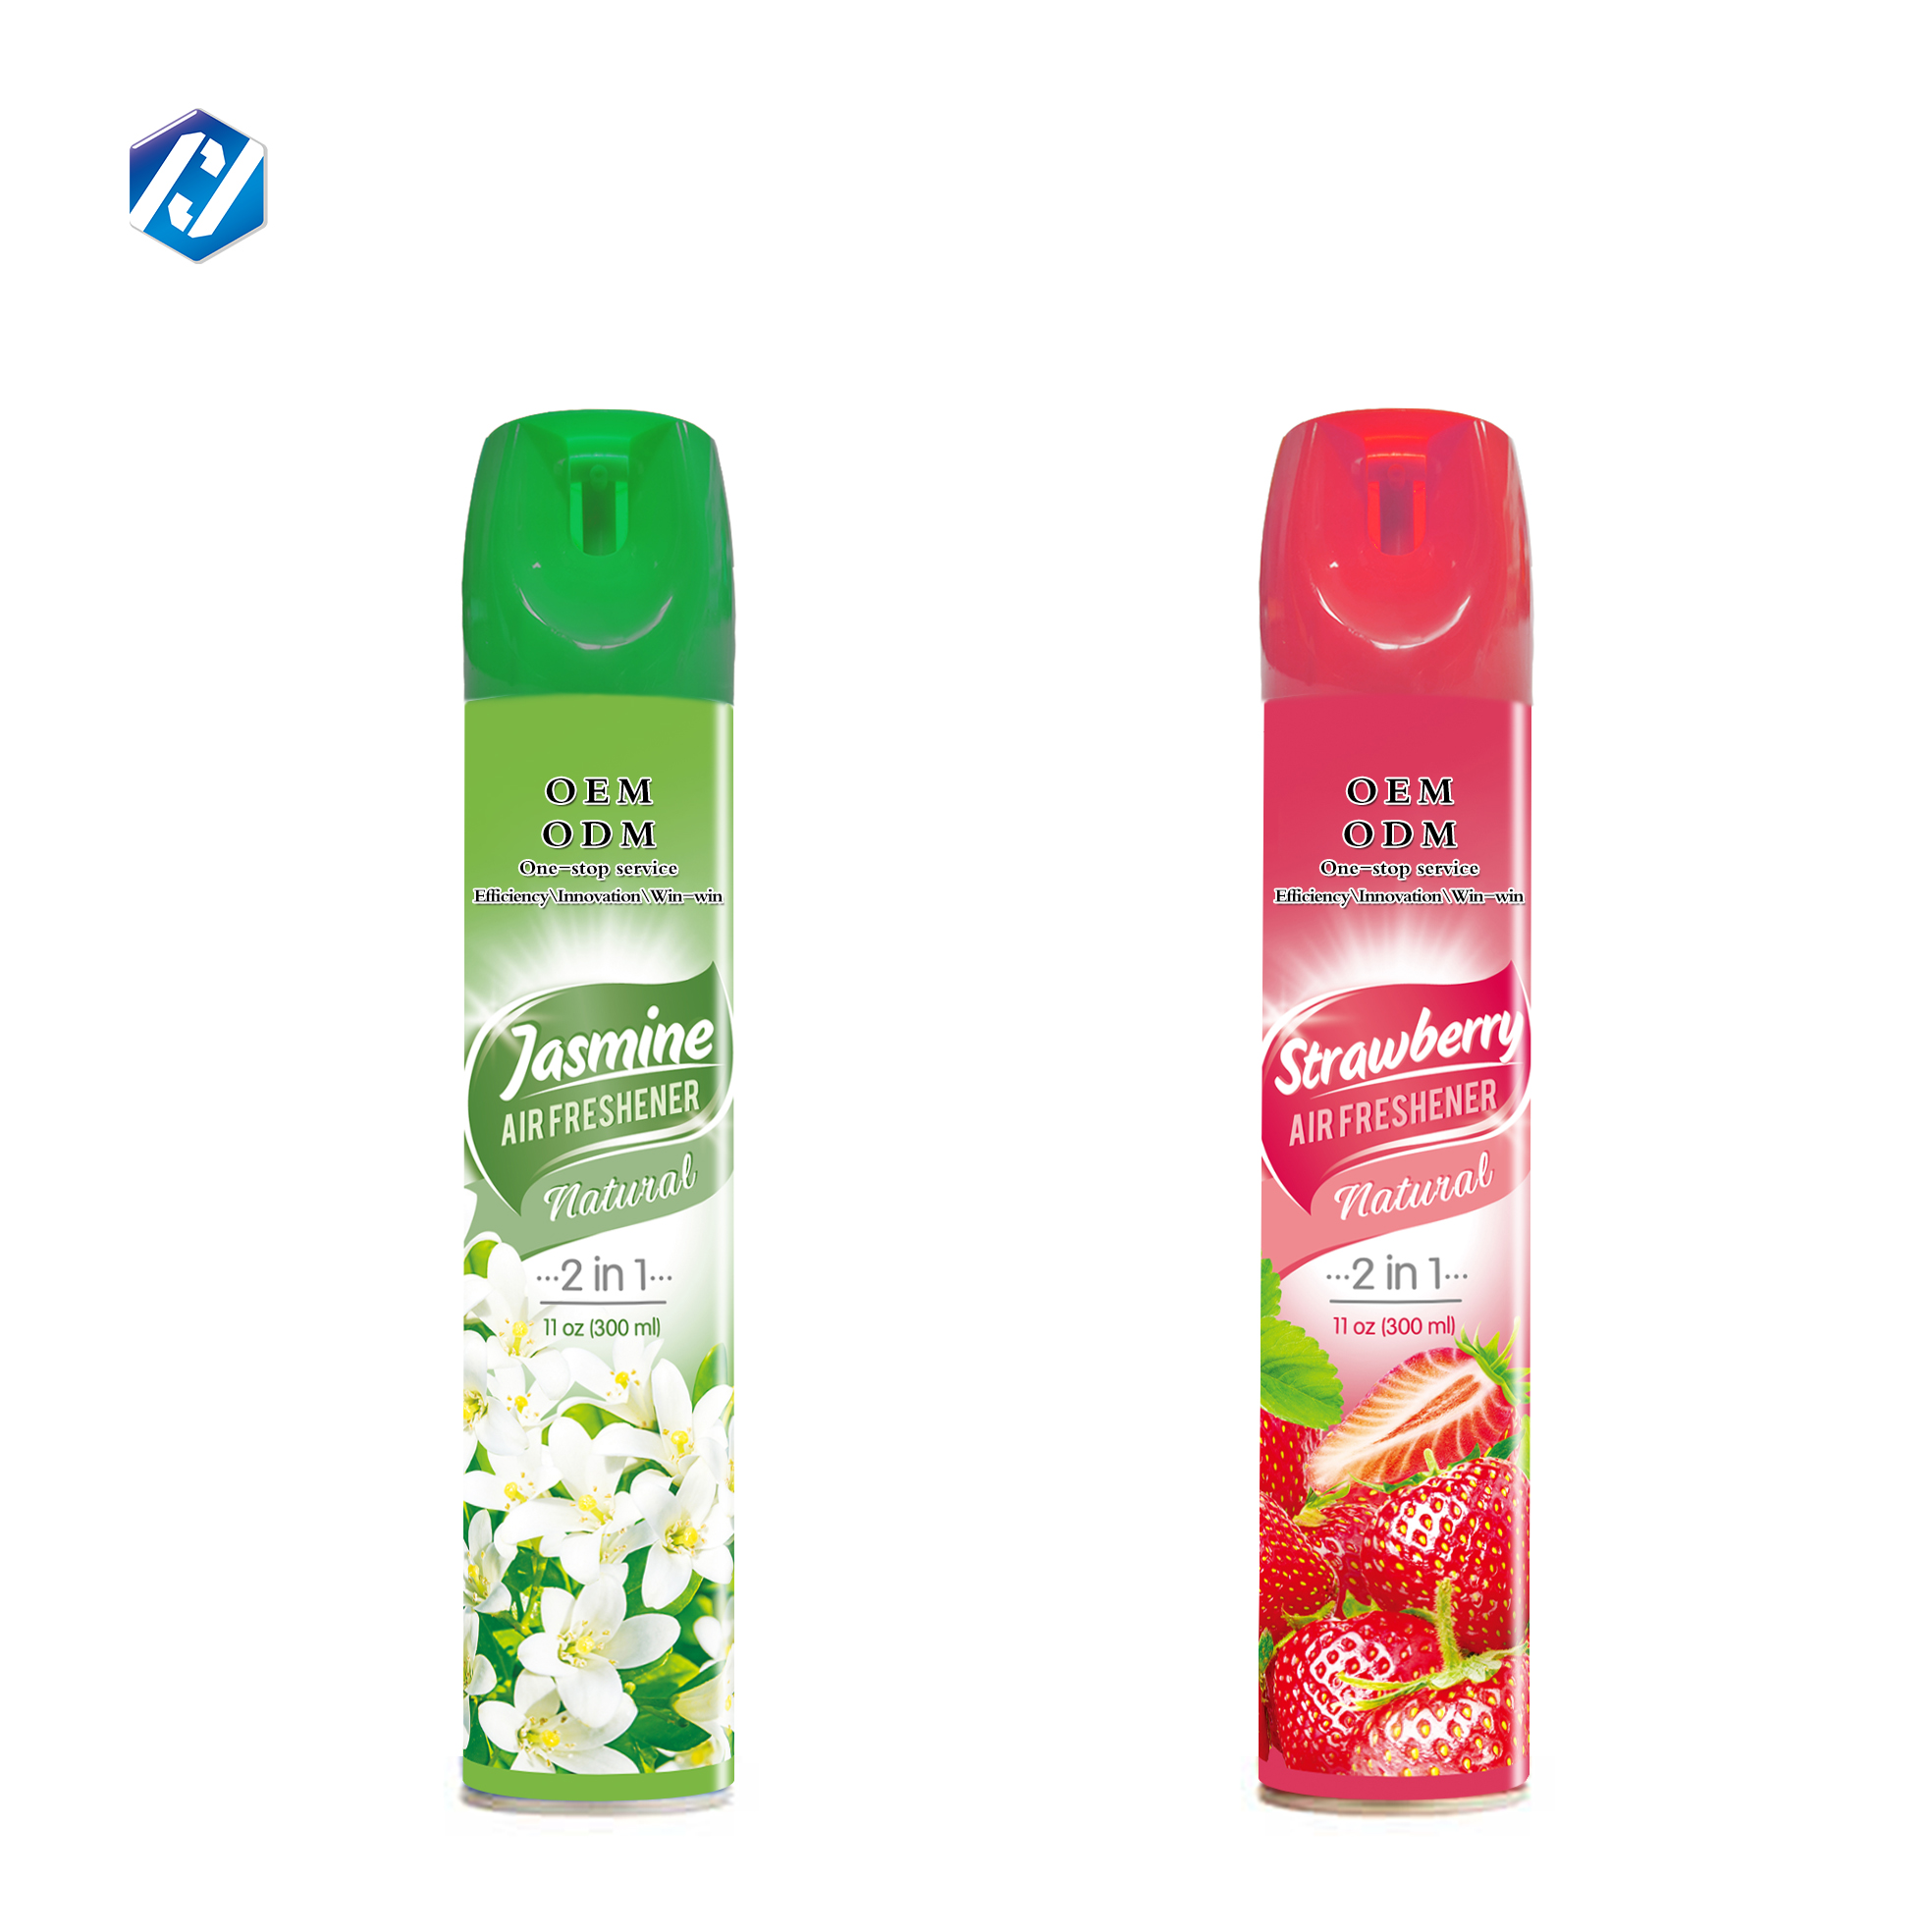 Ona air freshener stepper for home use